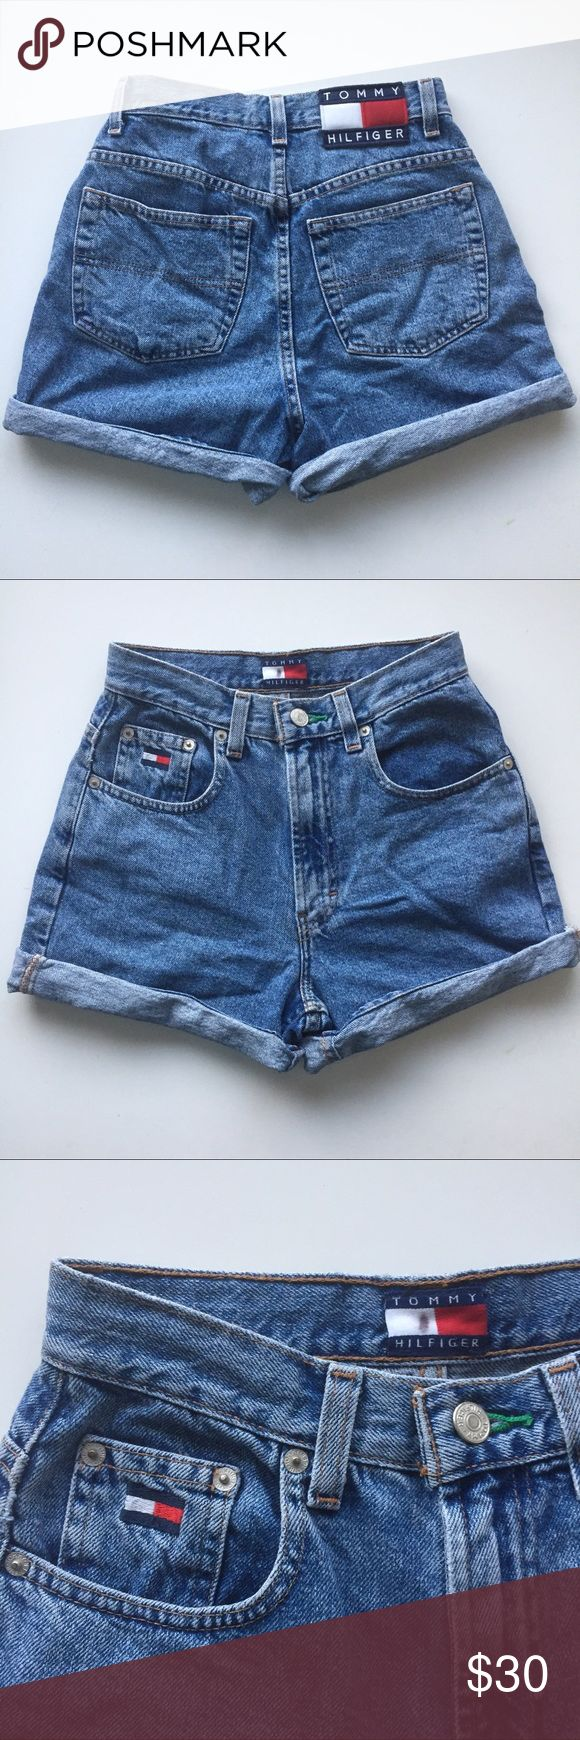 Vintage Tommy Hilfiger Shorts Super cute vintage Tommy Hilfiger denim high waist shorts are pre-loved but in great condition! The hems aren't cuffed but I liked to roll them up so they can be a bit shorter and looked cuffed! Perfect this summer paired with a crop top or a breezy blouse! Great for festivals or the beach! Size 2. Can provide measurements! Tommy Hilfiger Shorts Jean Shorts